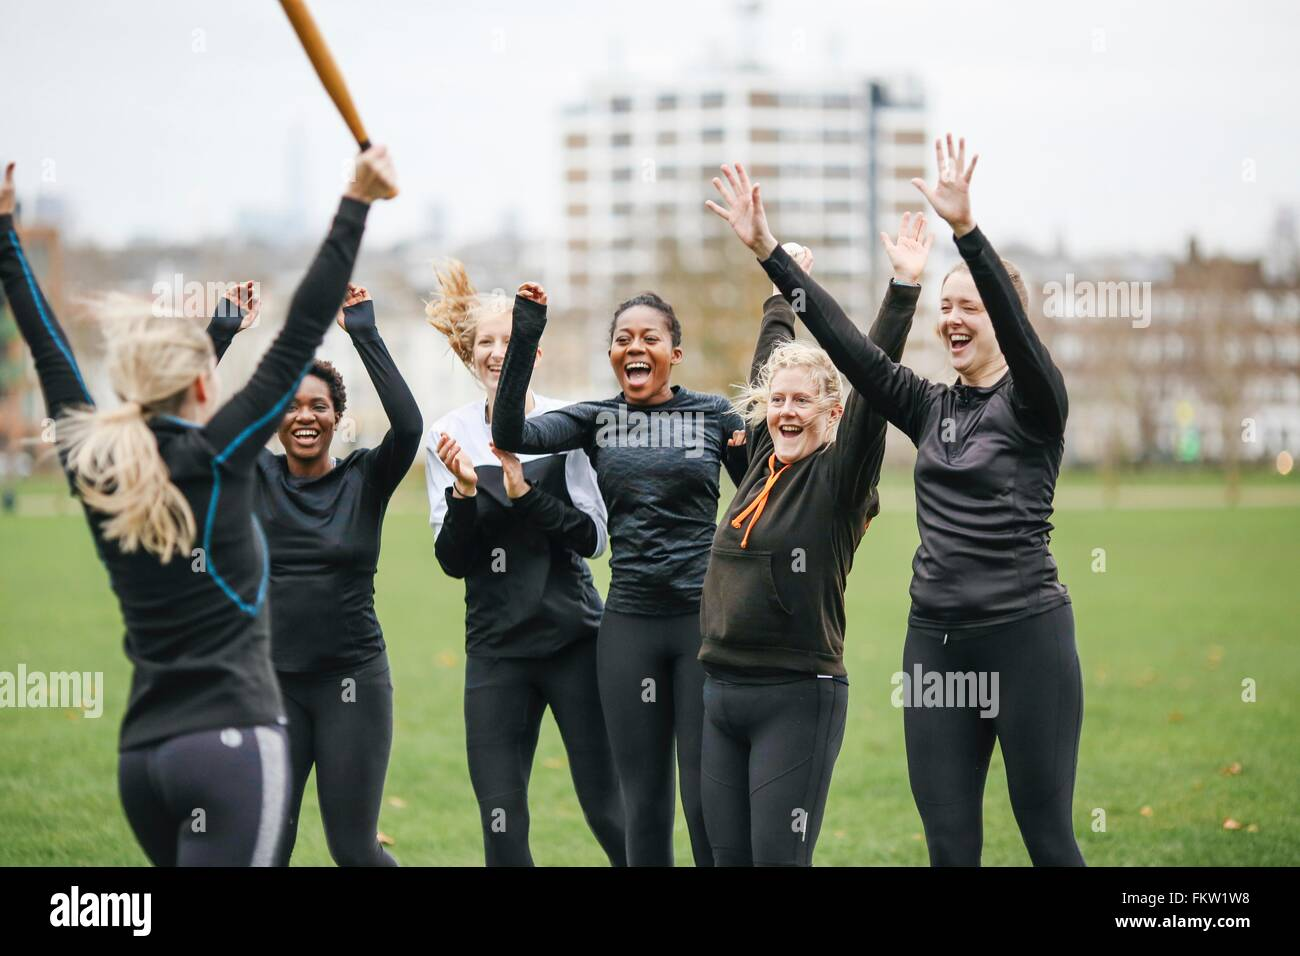 L'équipe féminine rounders celebrating at rounders match Photo Stock